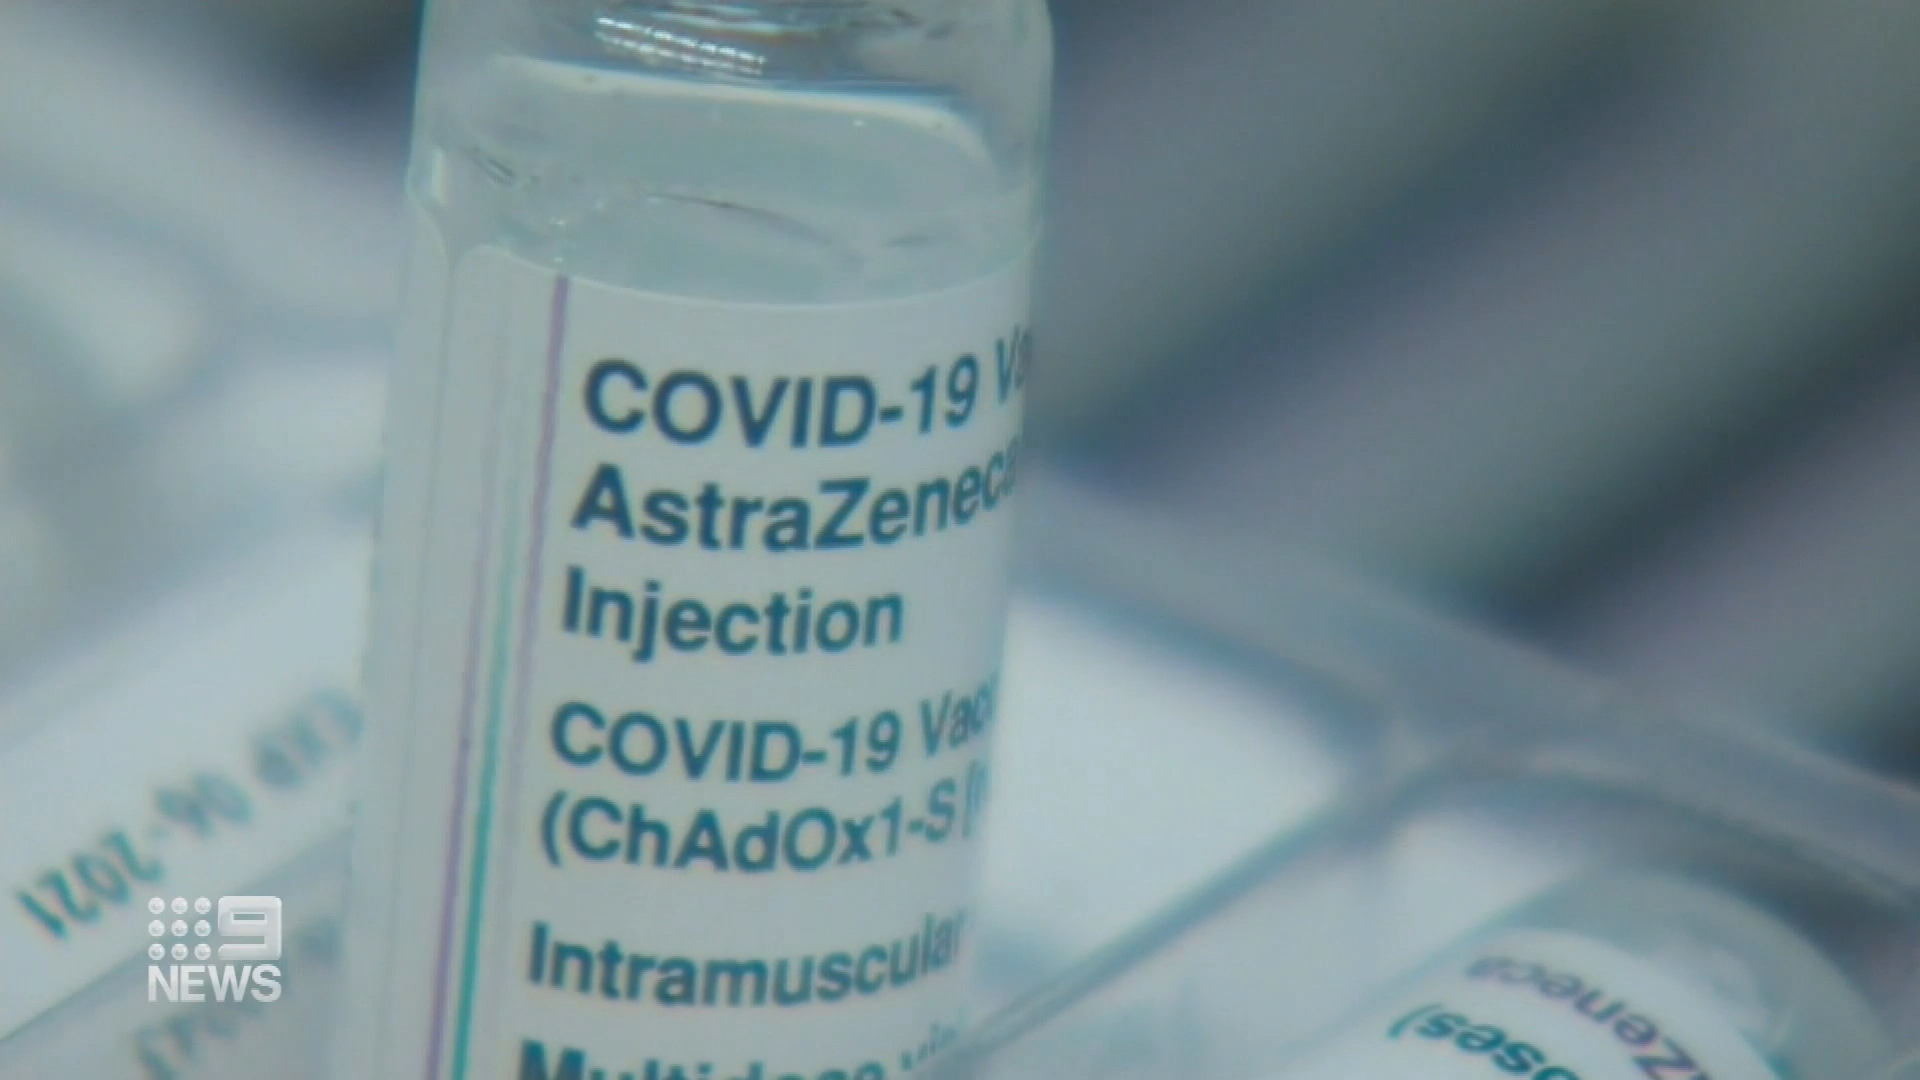 AstraZeneca now available at some pharmacies